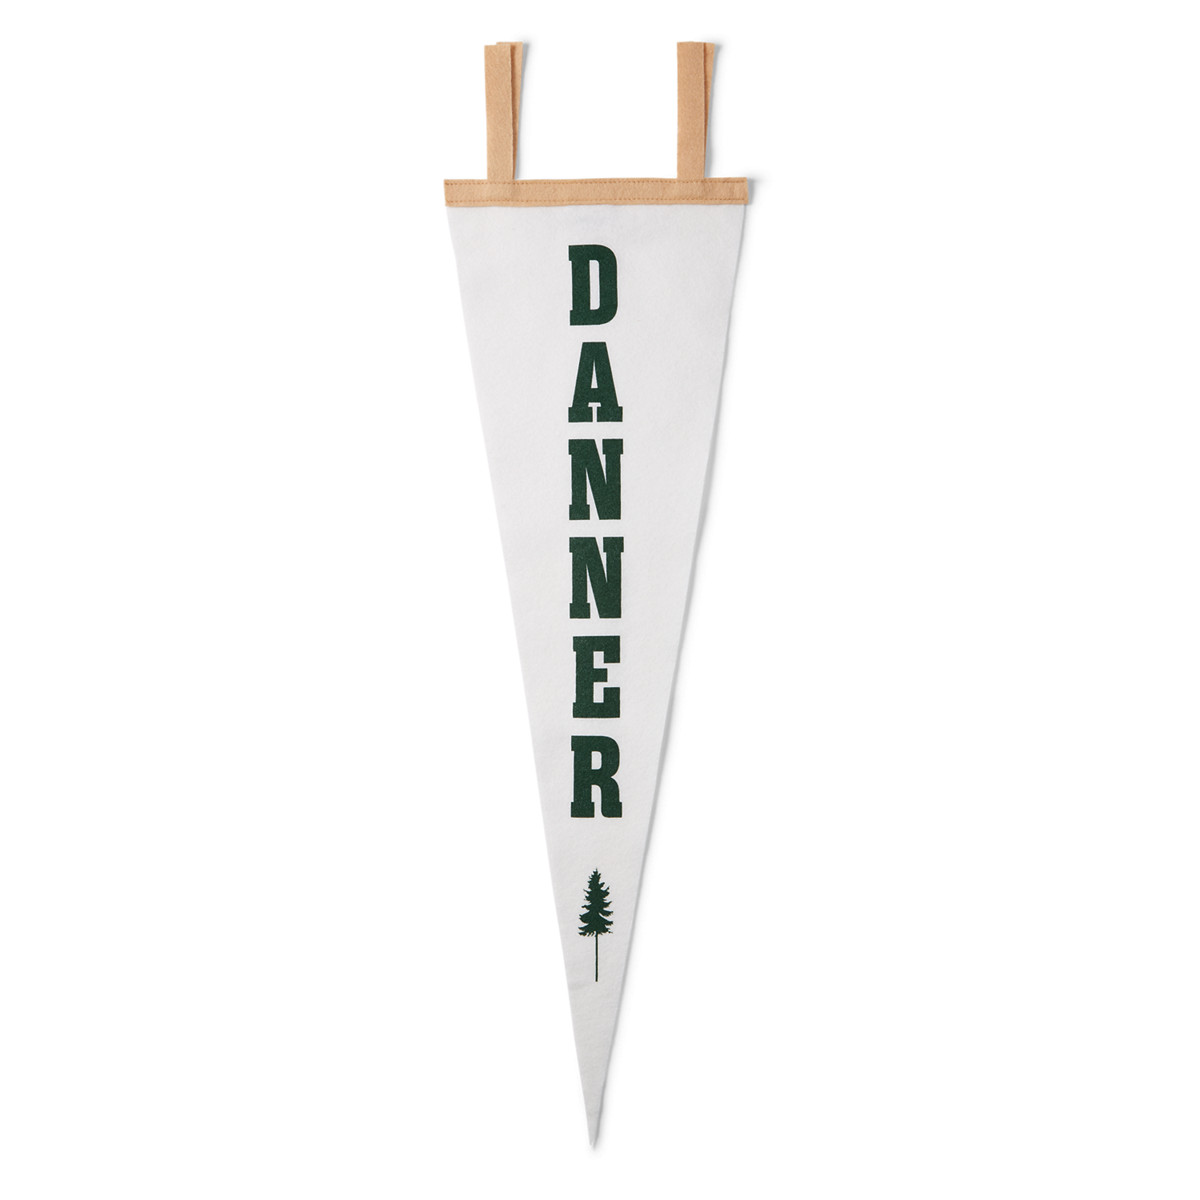 Danner Tree Pennant - White/Green